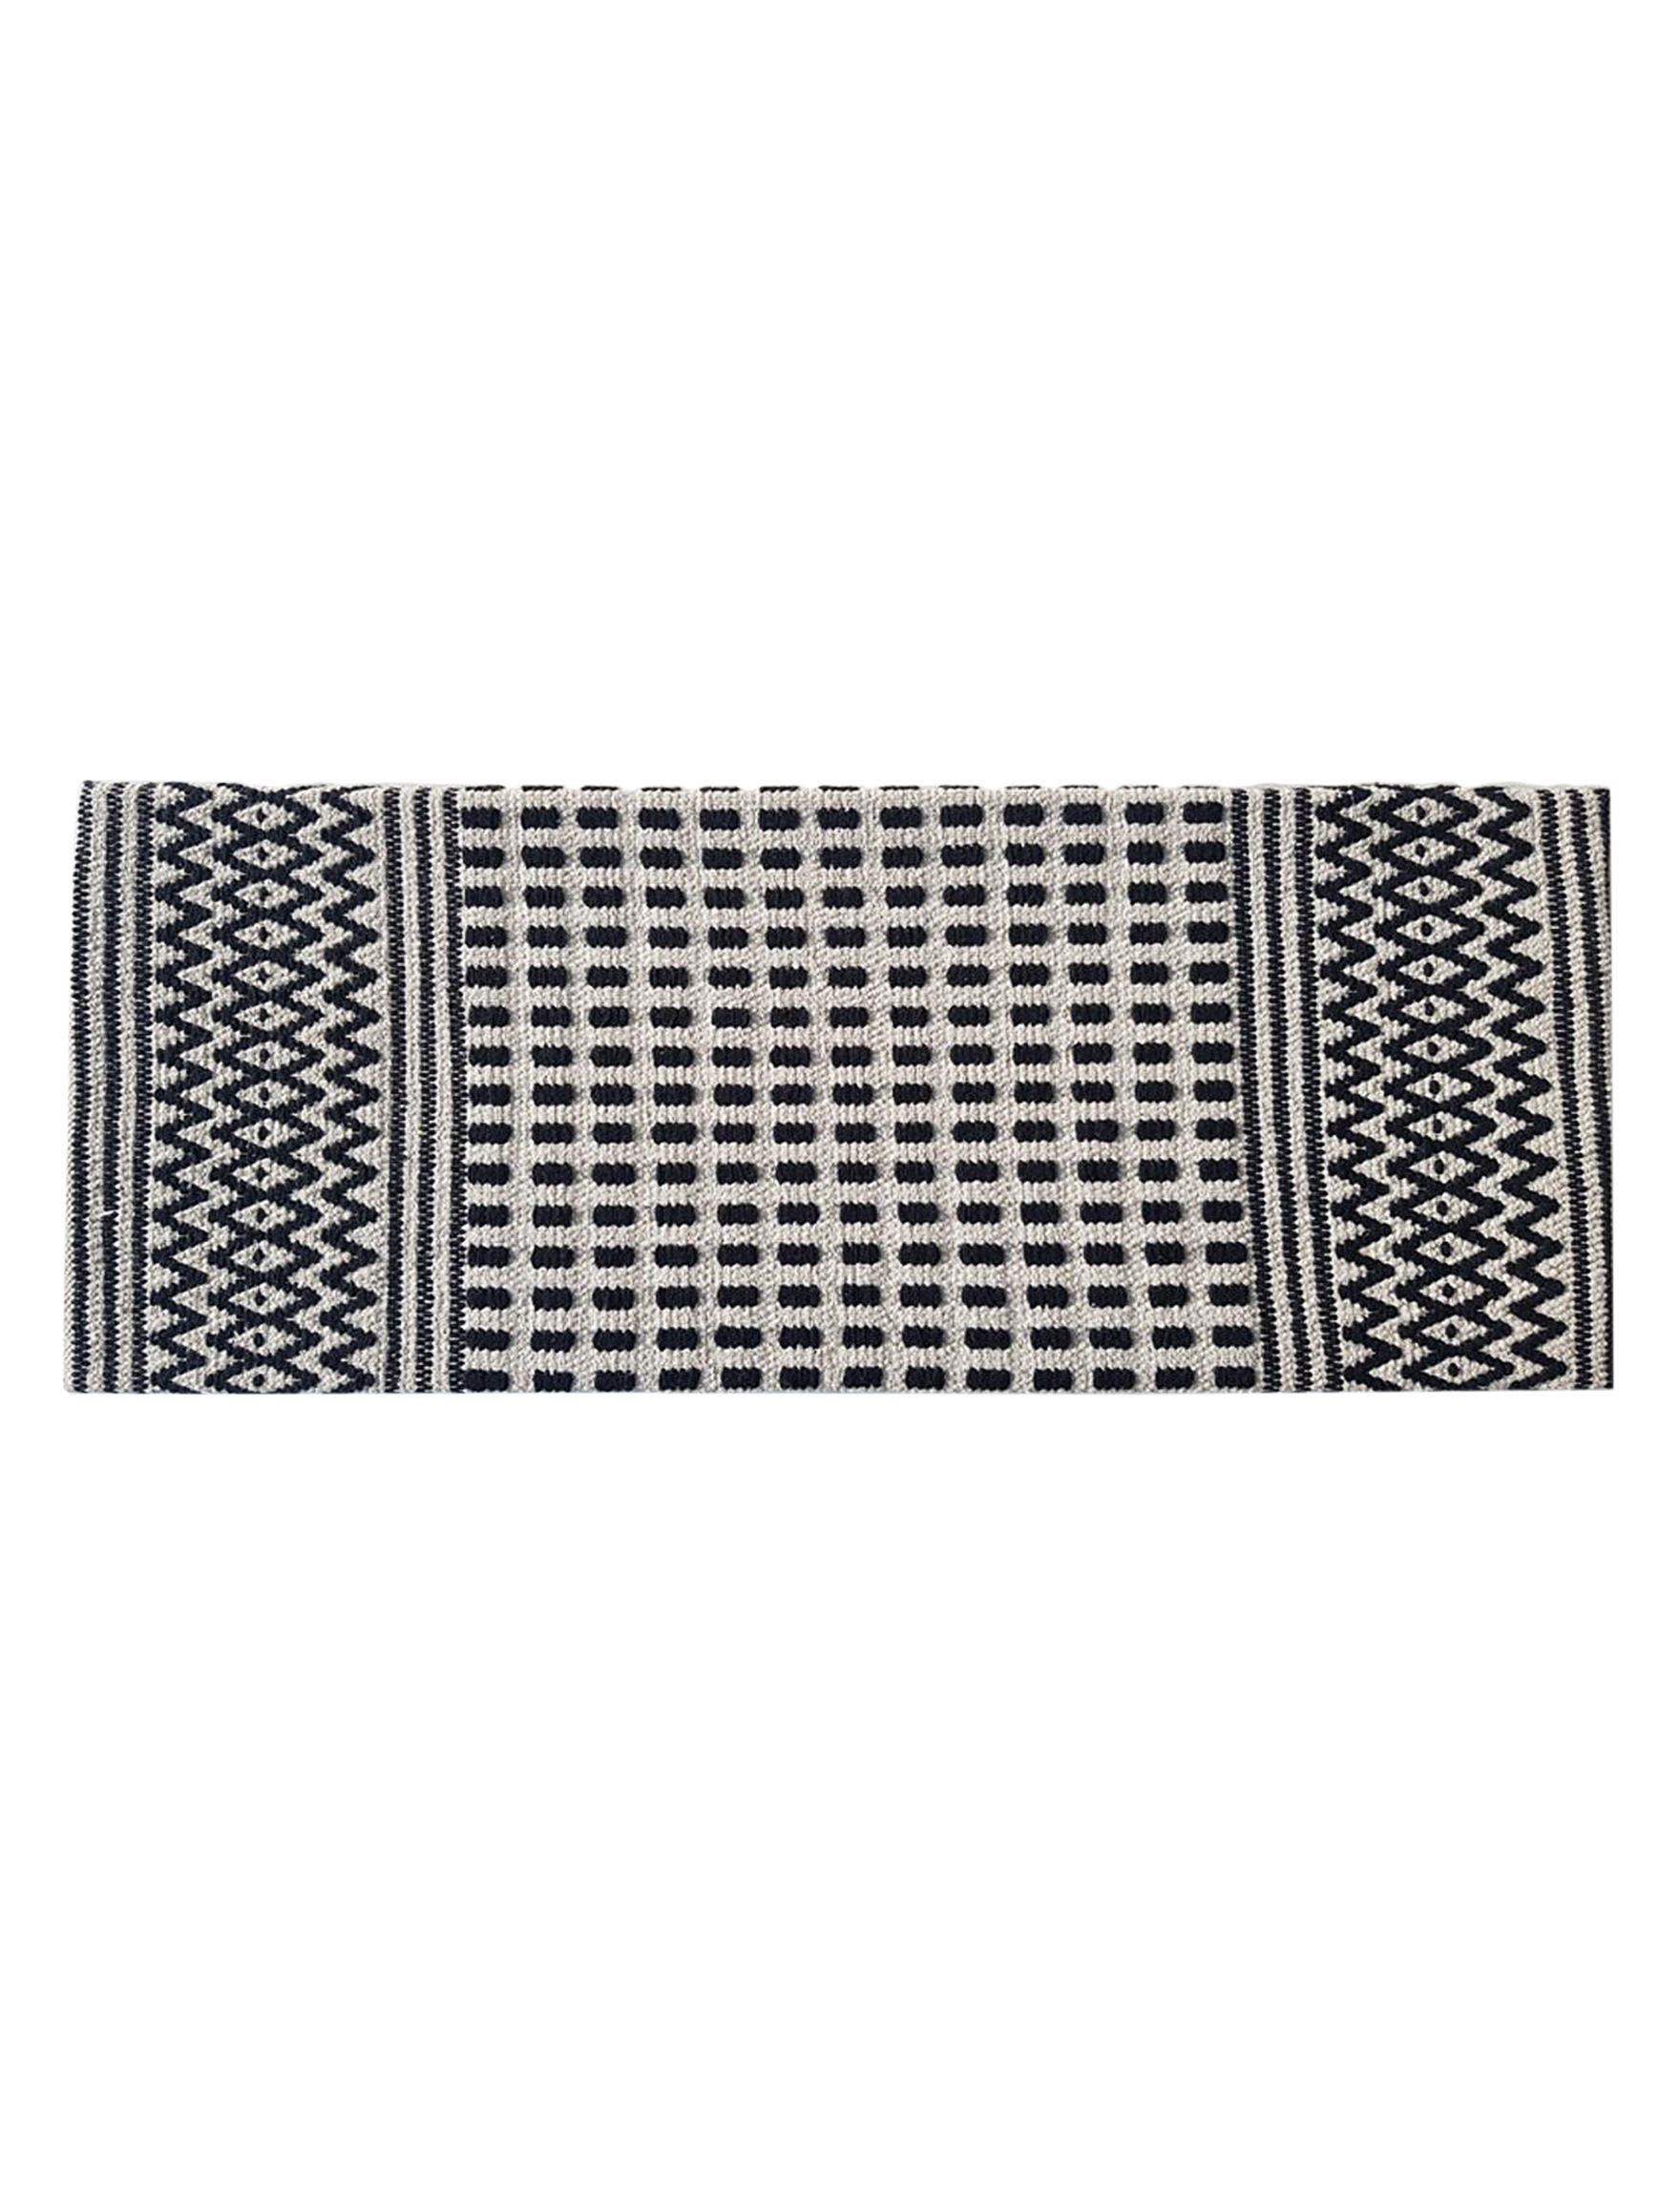 Direct Home Tex. Black / Beige Kitchen Rugs Rugs